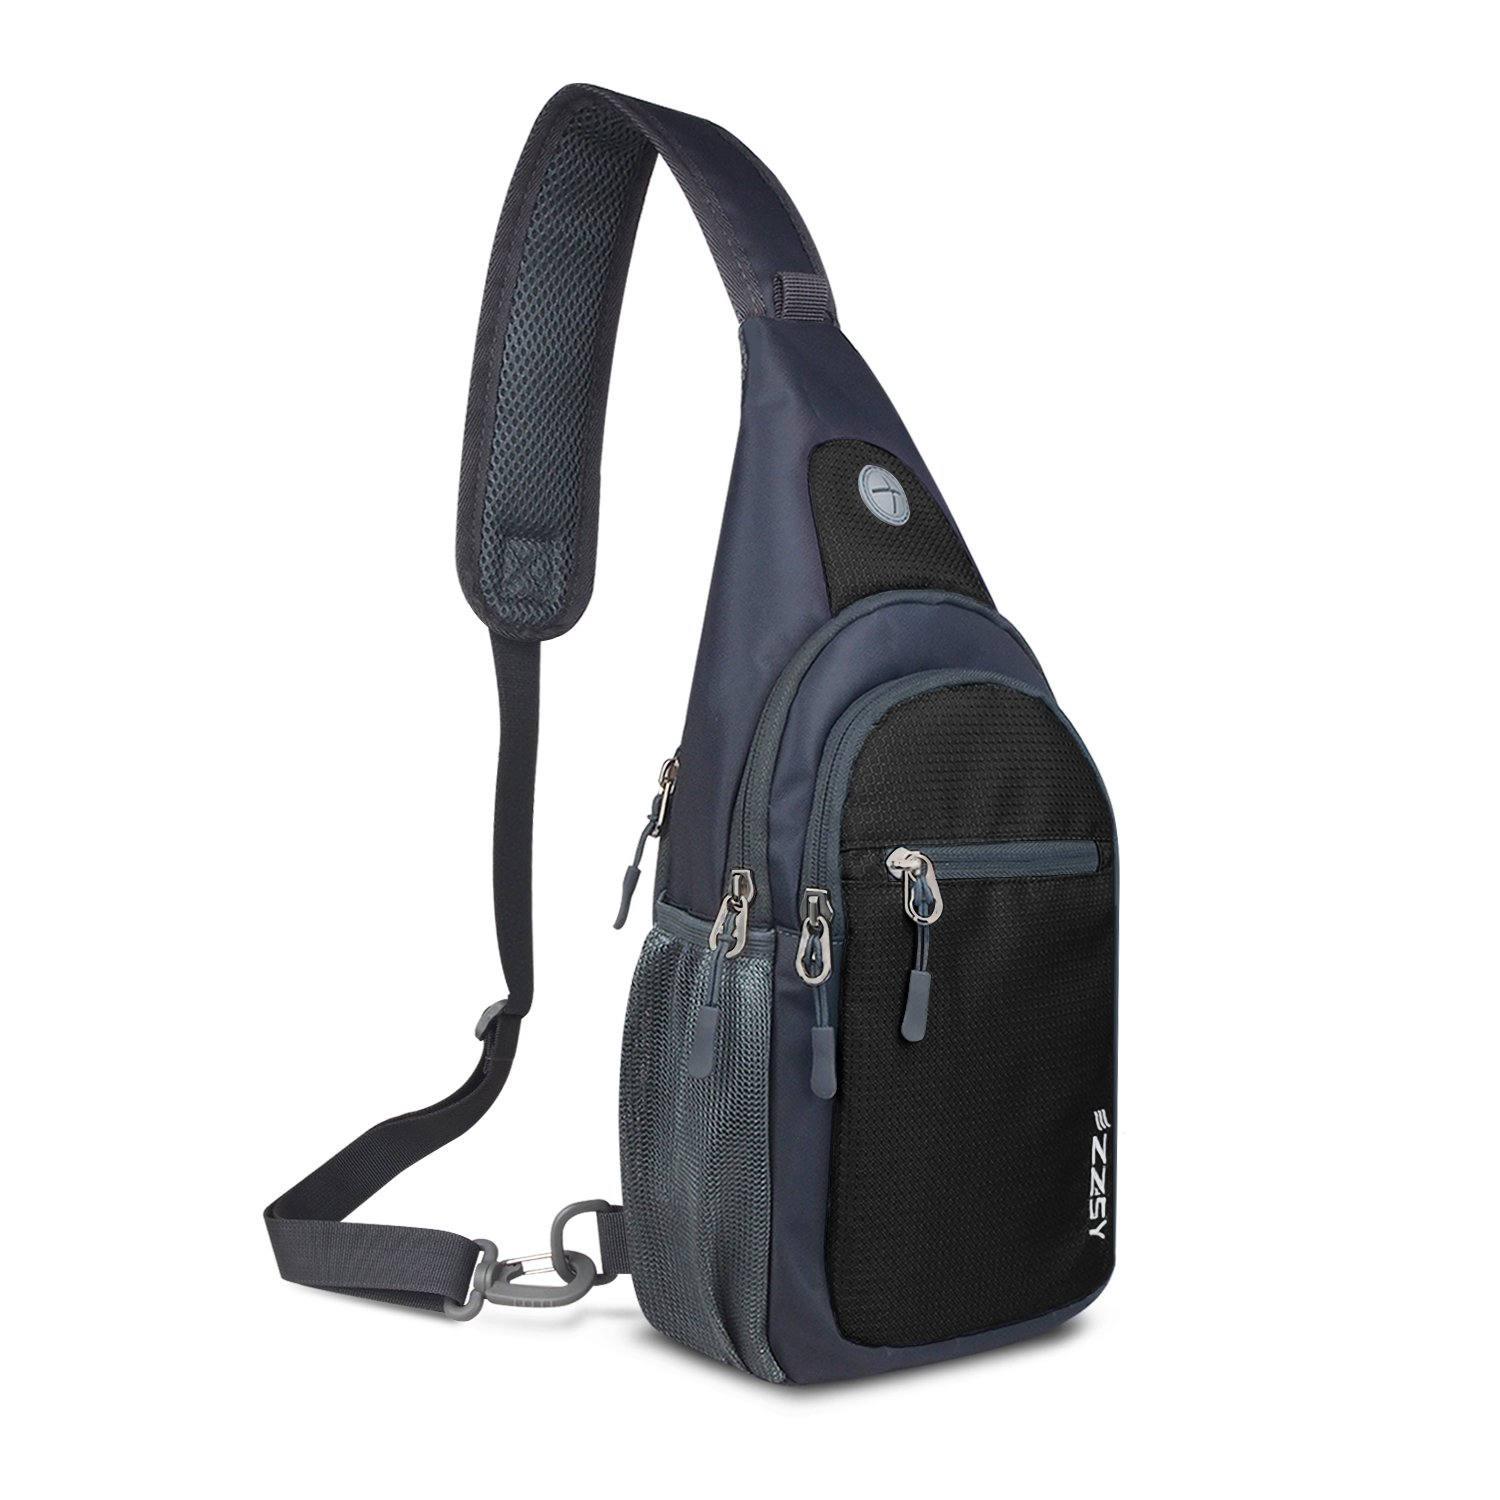 ZZSY Sling Backpack, Shoulder Chest Crossbody Bag Small Daypack for Outdoor Hiking Men & Women by ZZSY